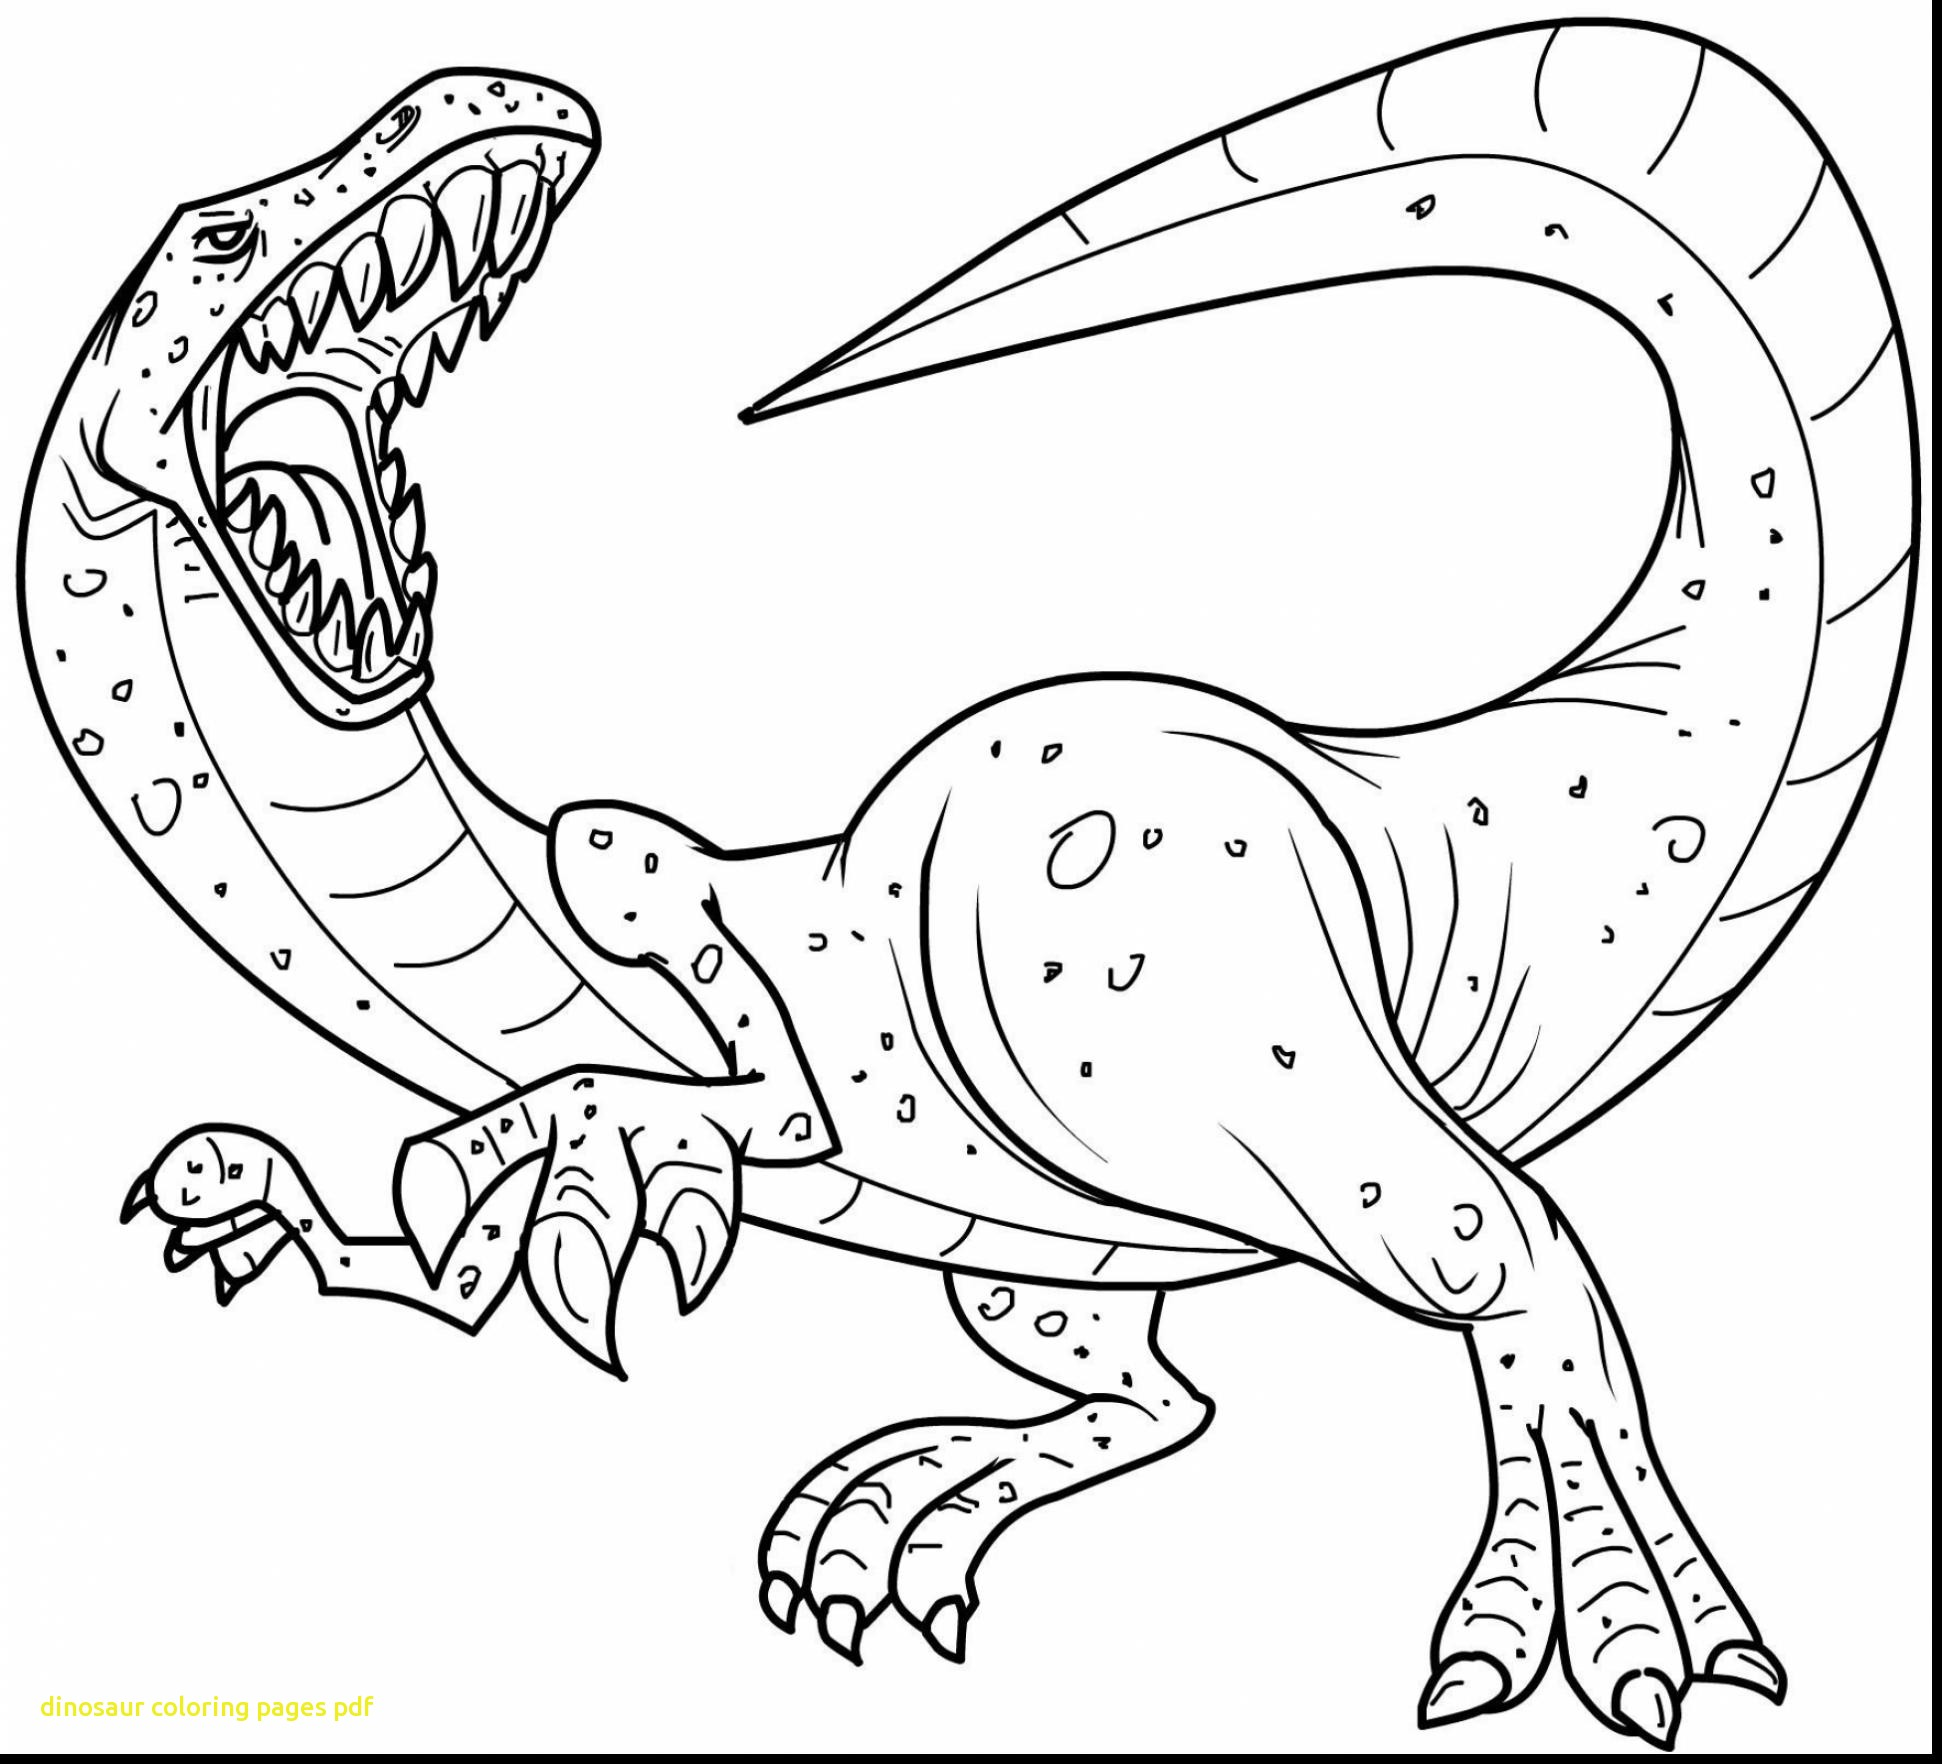 1942x1764 Dinosaur Coloring Pages Pdf Withwesome Dinosaur Color Make